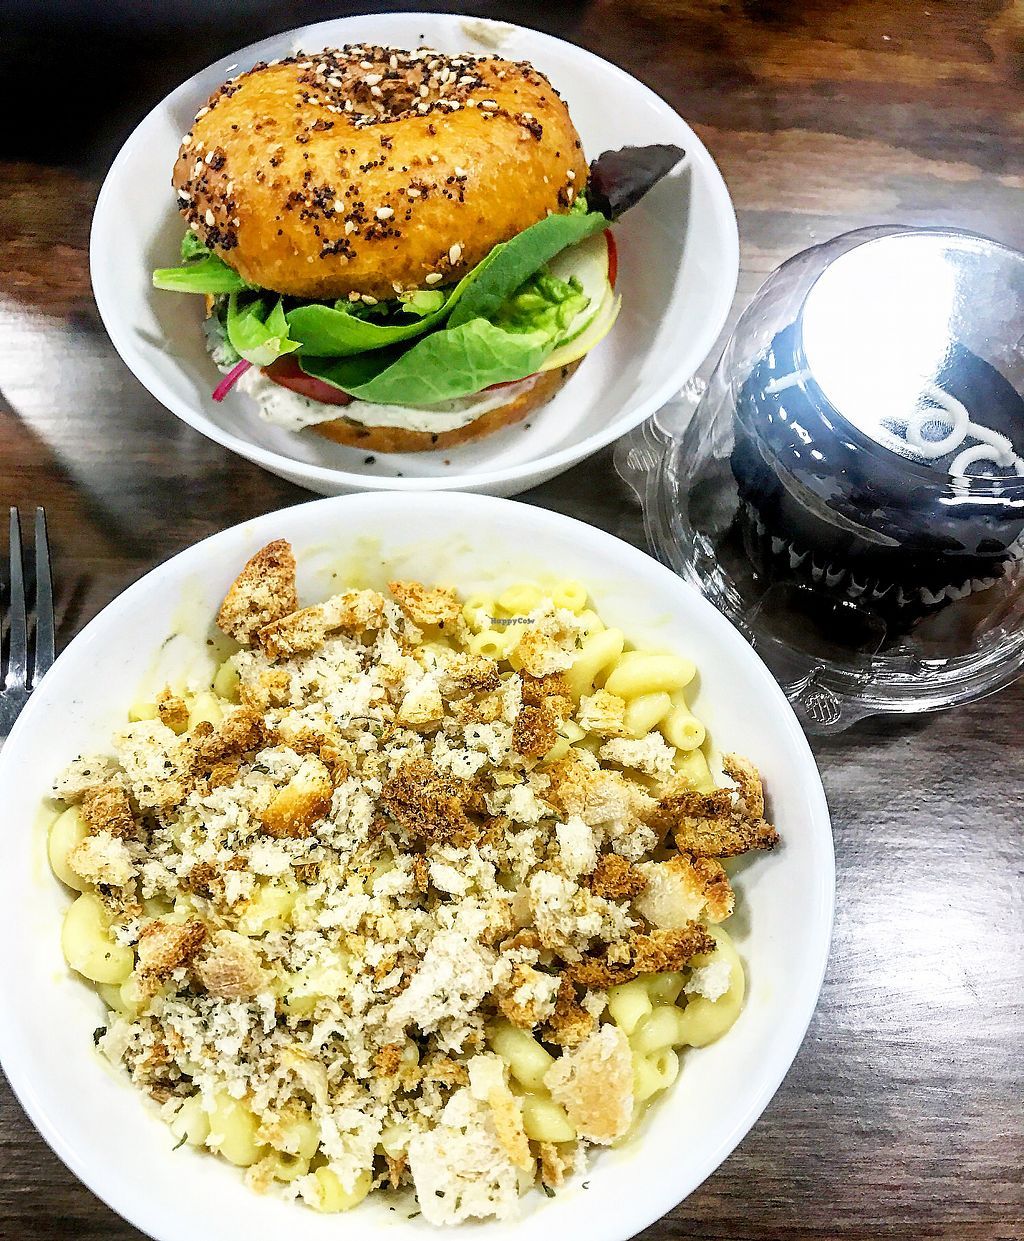 """Photo of Skull & Cakebones  by <a href=""""/members/profile/brero"""">brero</a> <br/>mac & cheese & the bagel sandwich  <br/> August 17, 2017  - <a href='/contact/abuse/image/90391/293456'>Report</a>"""